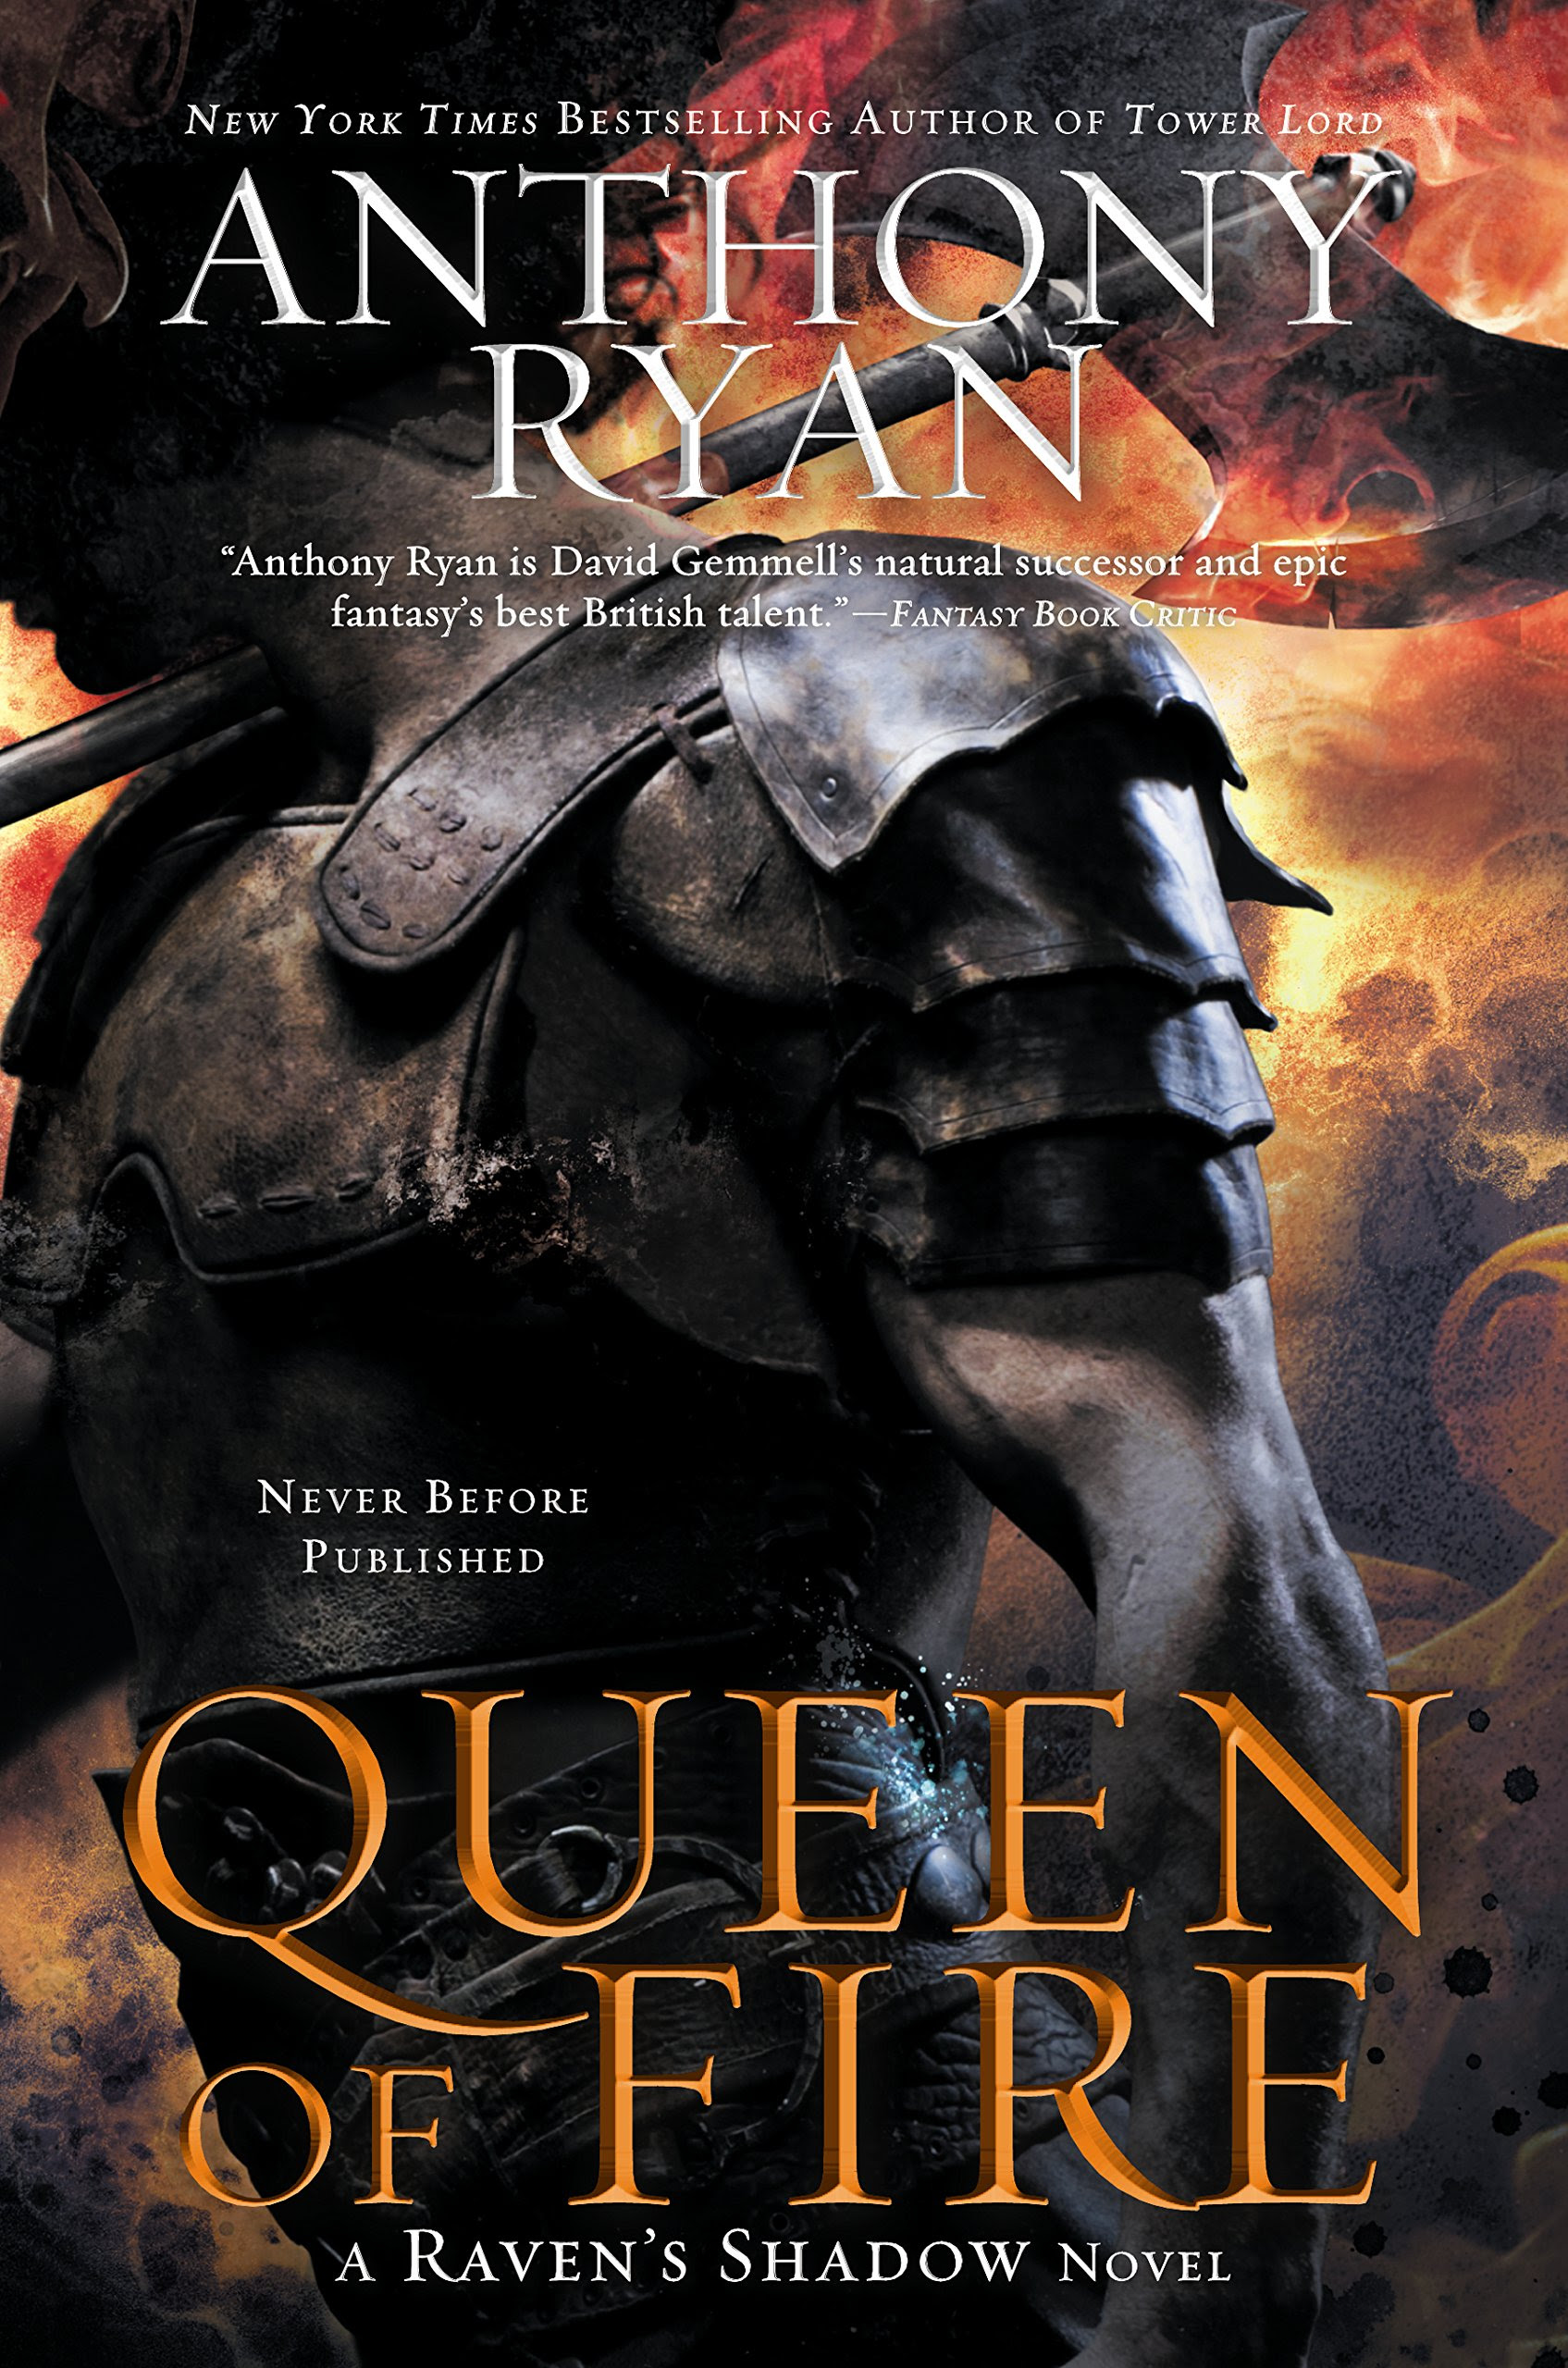 Bücherblog. Rezension. Book cover. Book cover. Queen of Fire (Book 3) Anthony Ryan. High Fantasy.